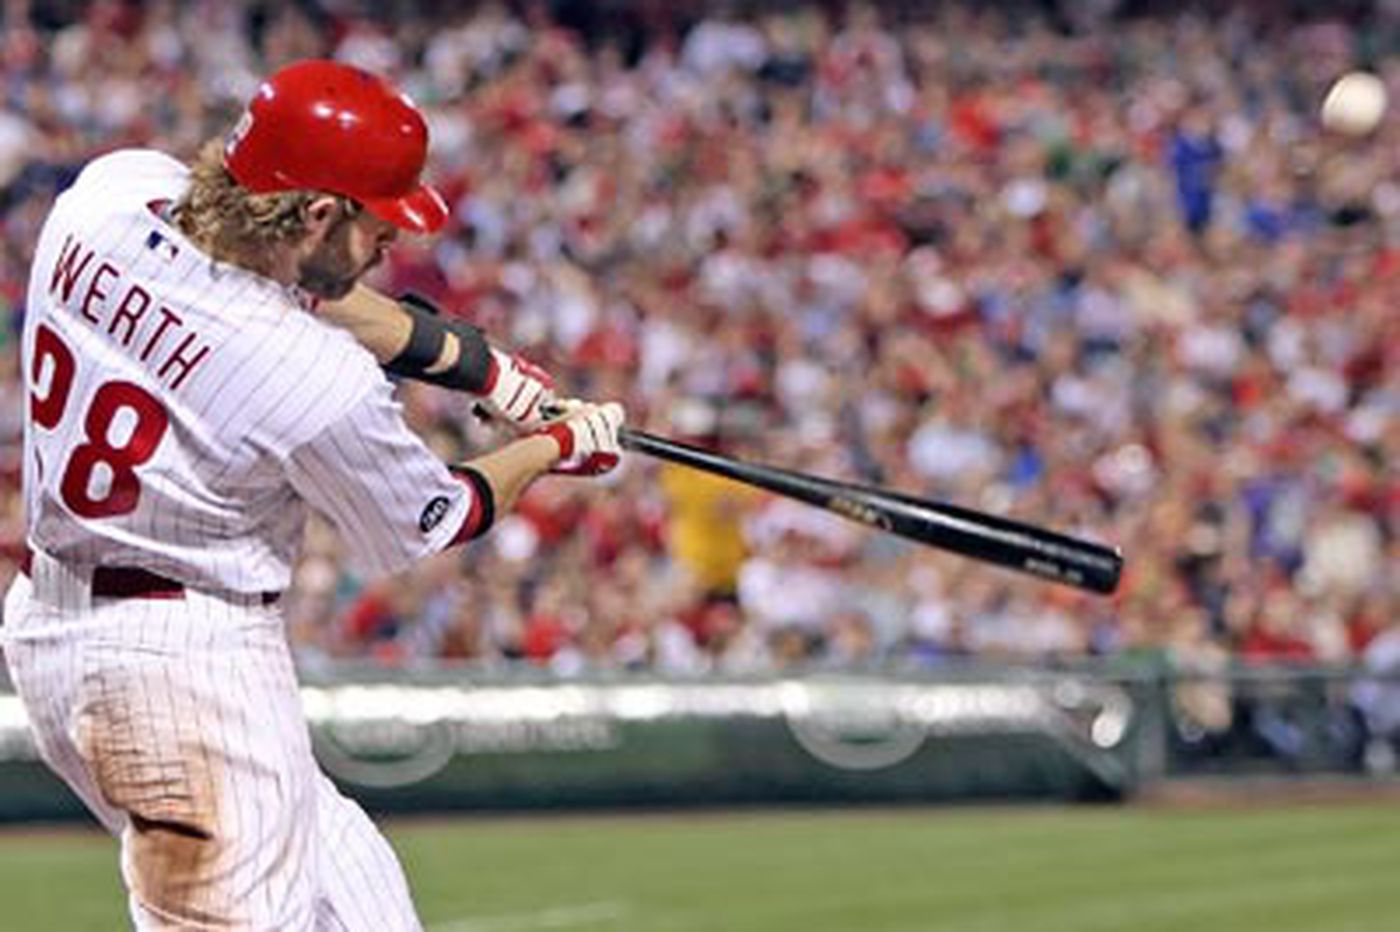 Phillies Notebook: Werth taking time off for swing adjustments